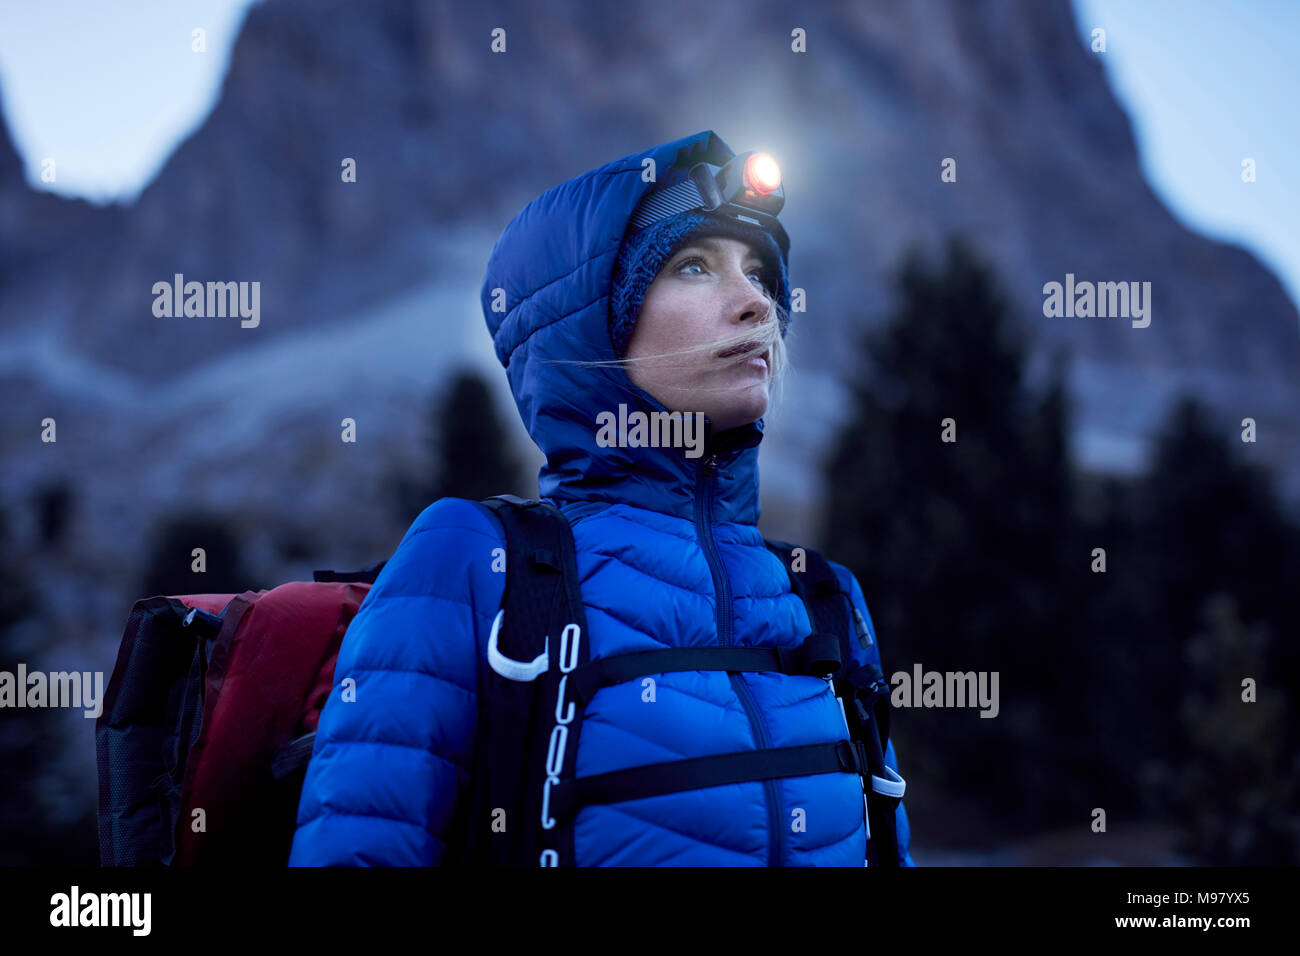 Young woman wearing headlamp at dusk in the mountains - Stock Image